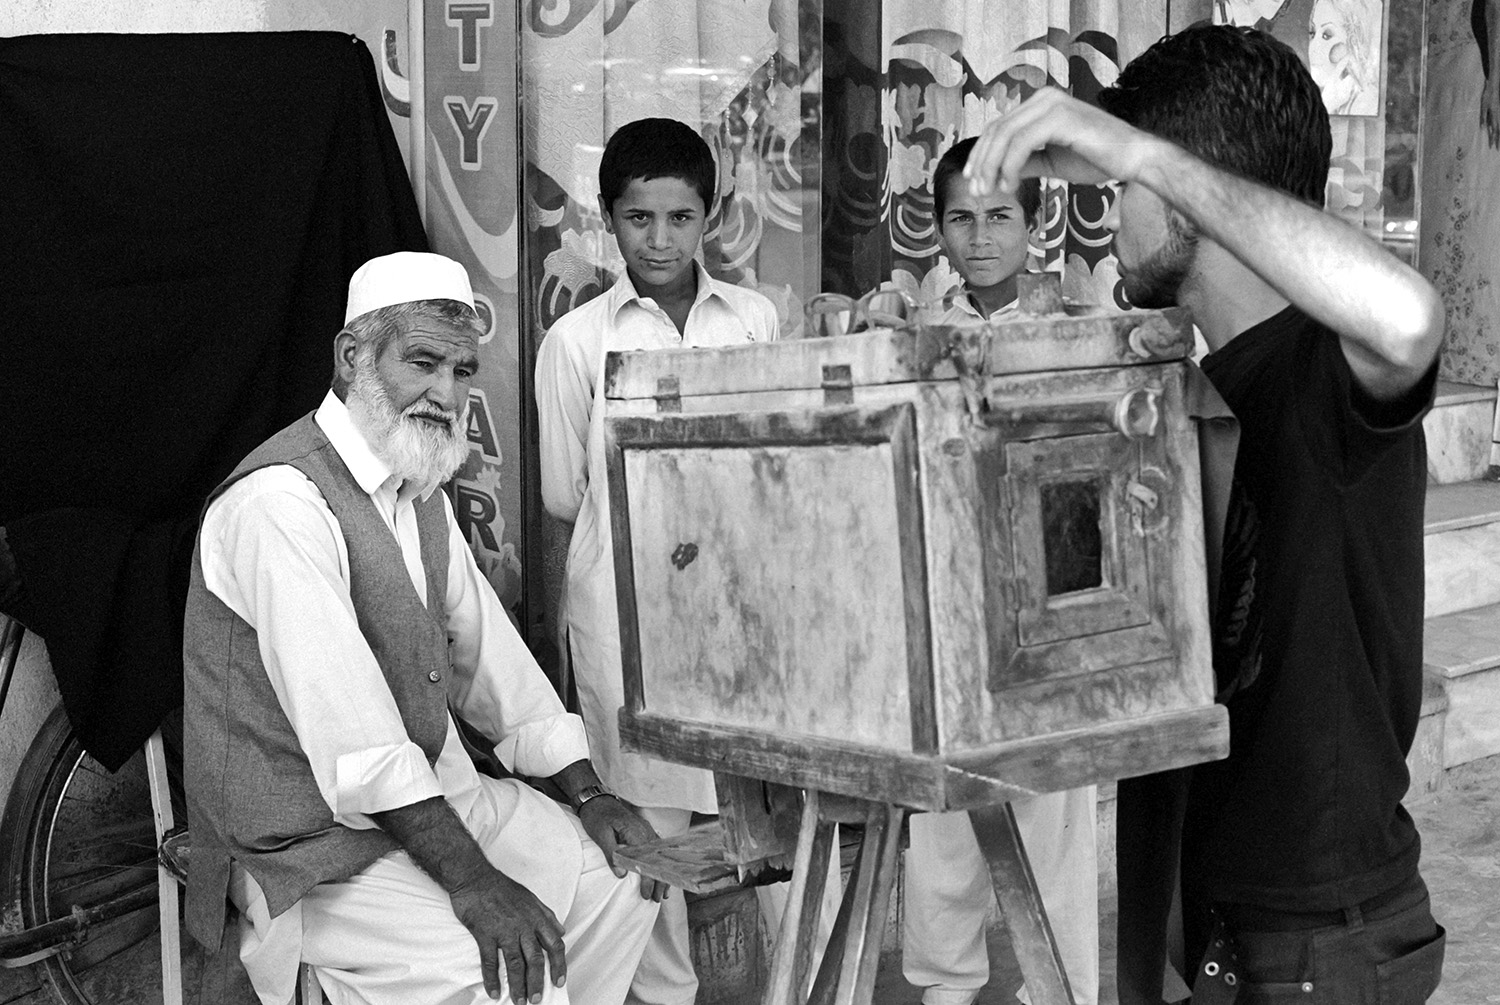 Mirzaman being photographed by his son, Kabul, 2012